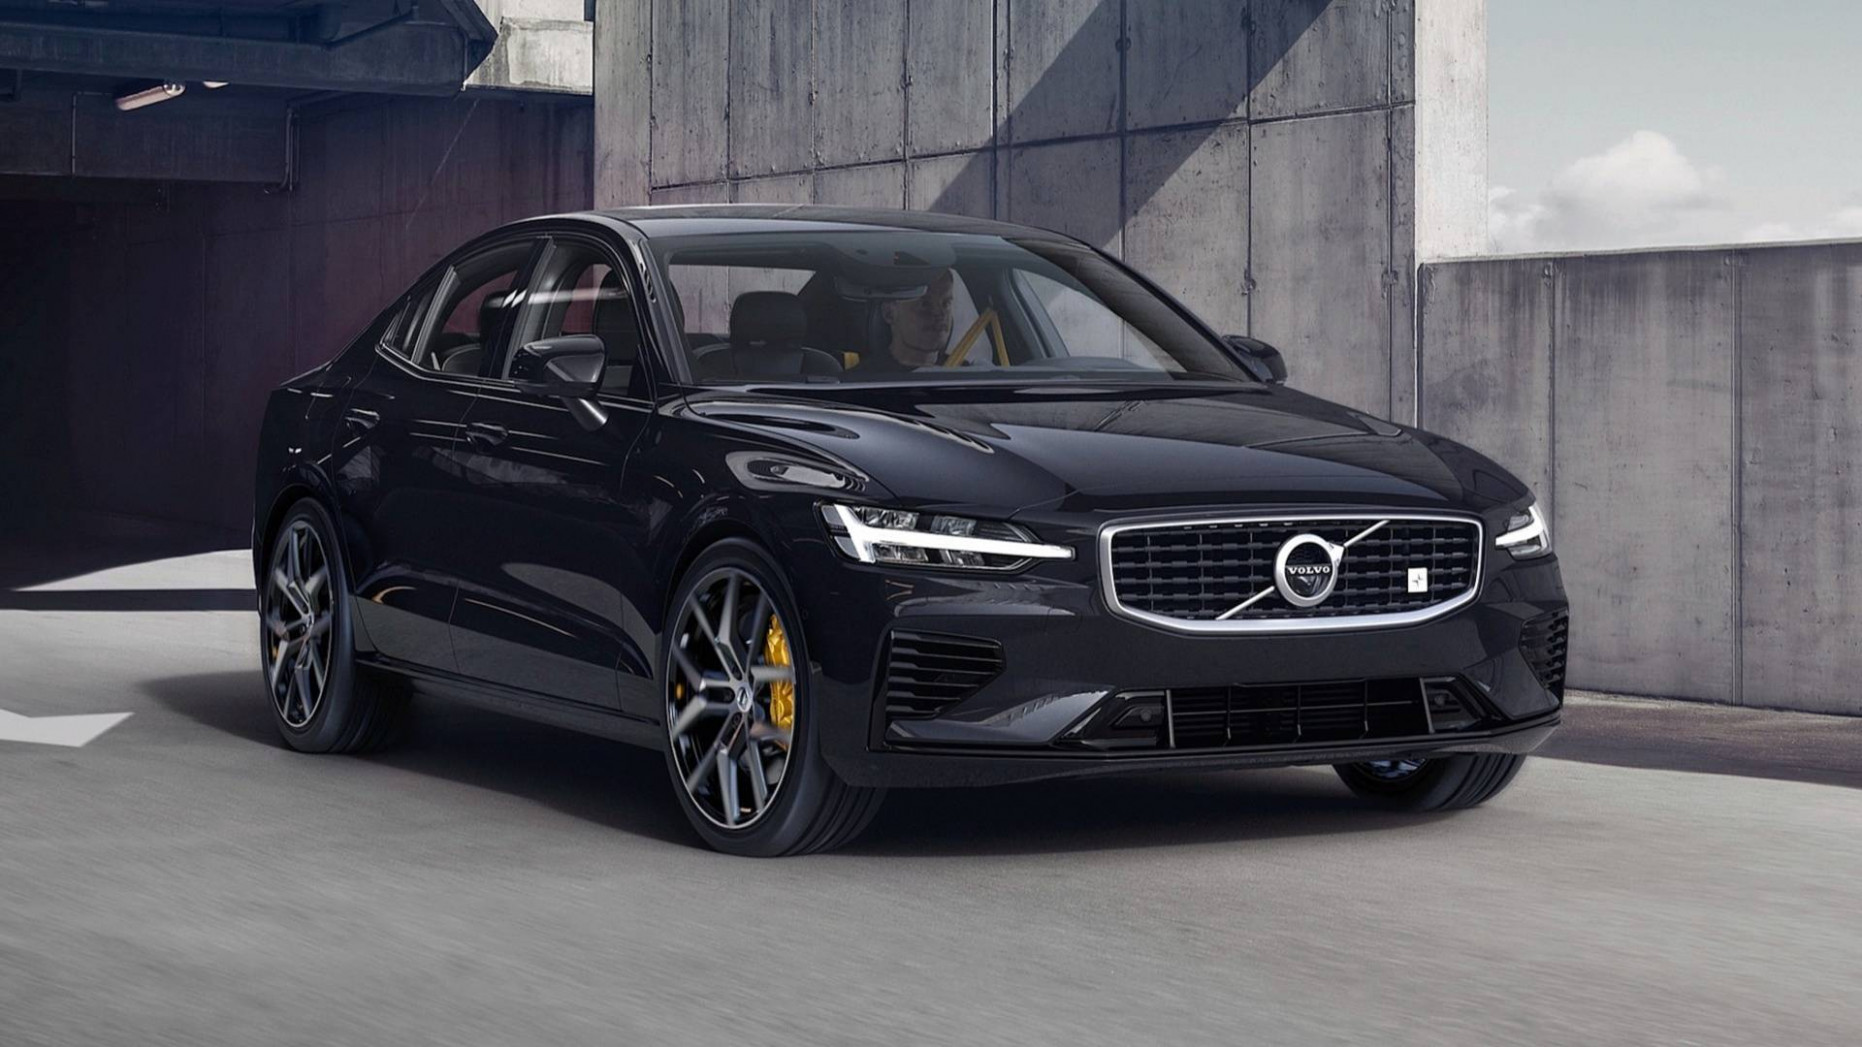 Volvo S12 Polestar Engineered Limited To 12 Examples In U.S